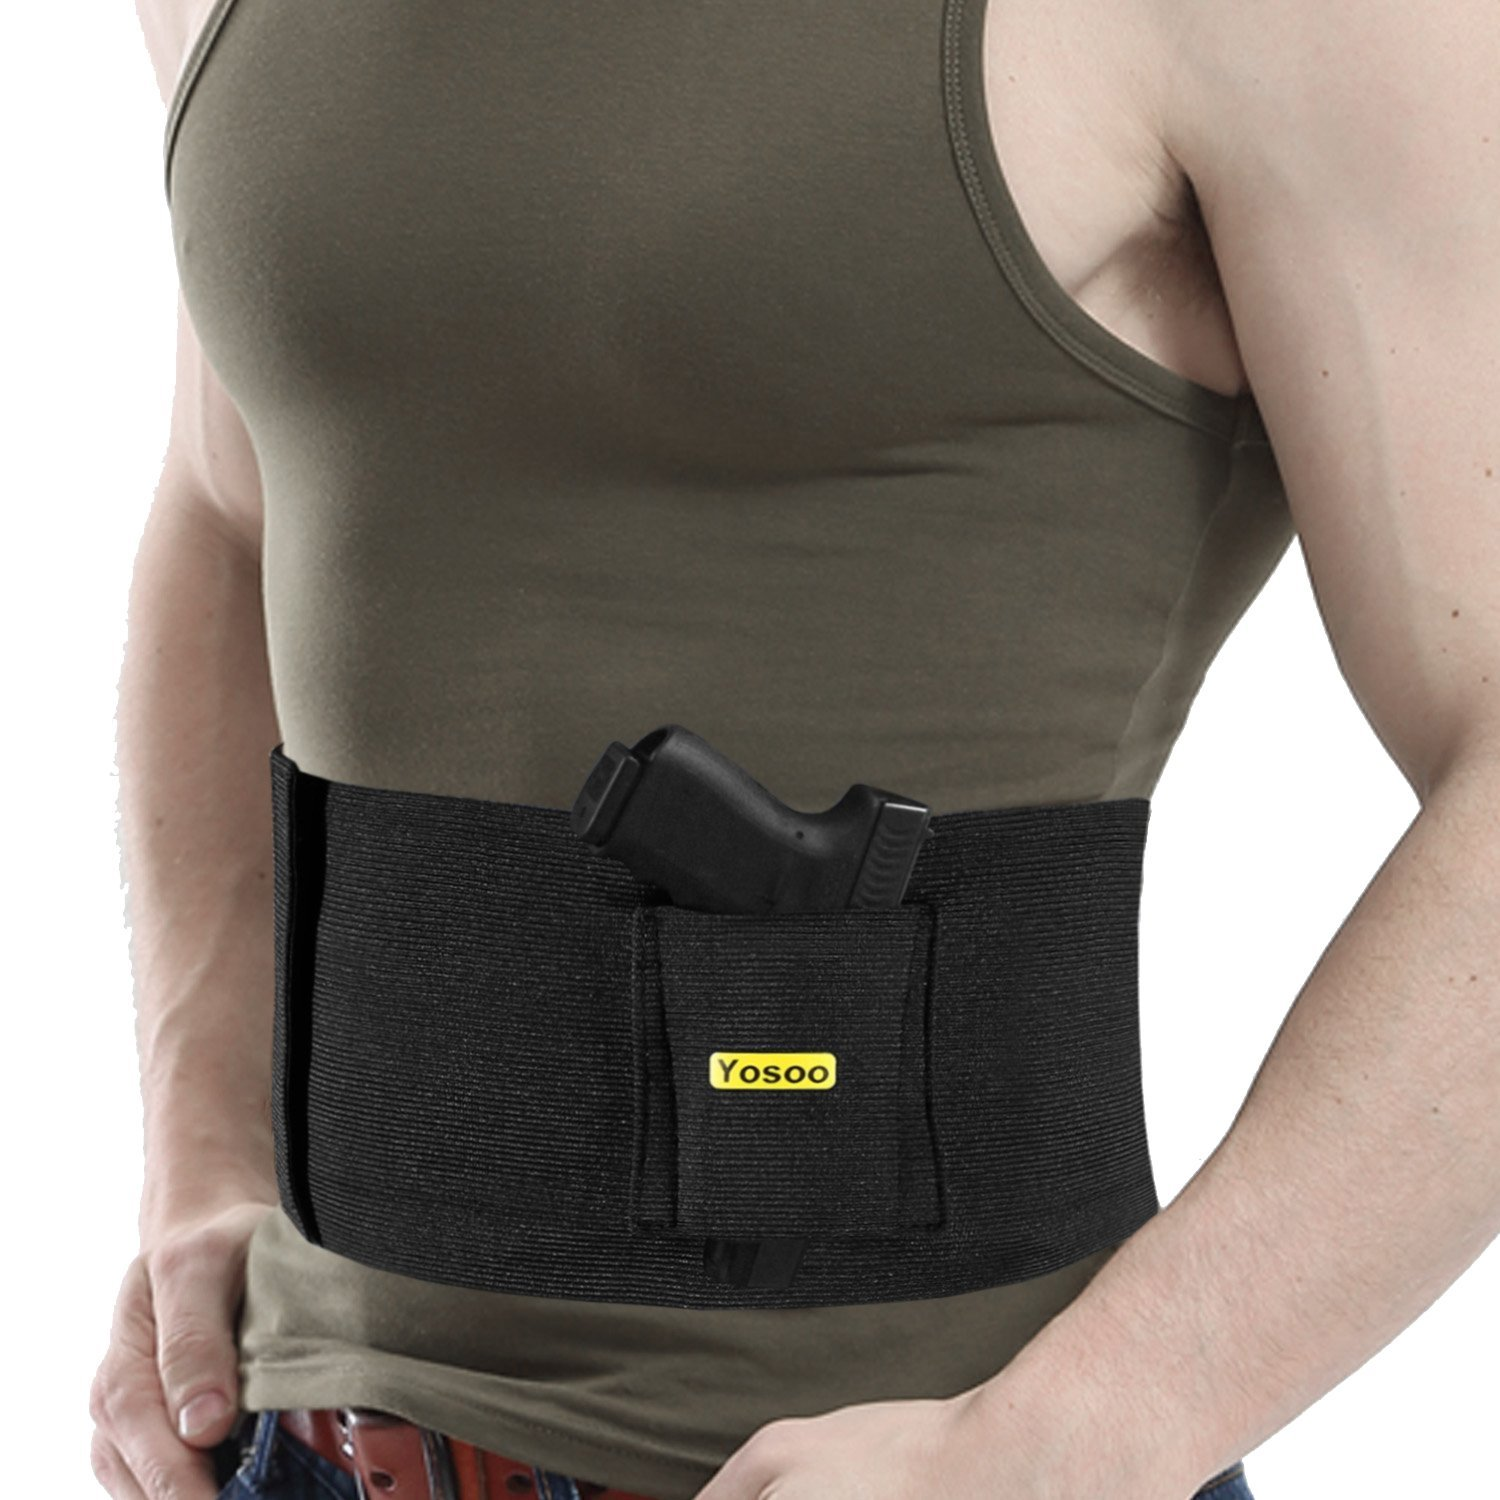 Yosoo Belly Band Holster for Concealed Carry Adjustable Hand Gun IWB Holsters with Magazine Pouch for Men Women, Fits... by Yosoo